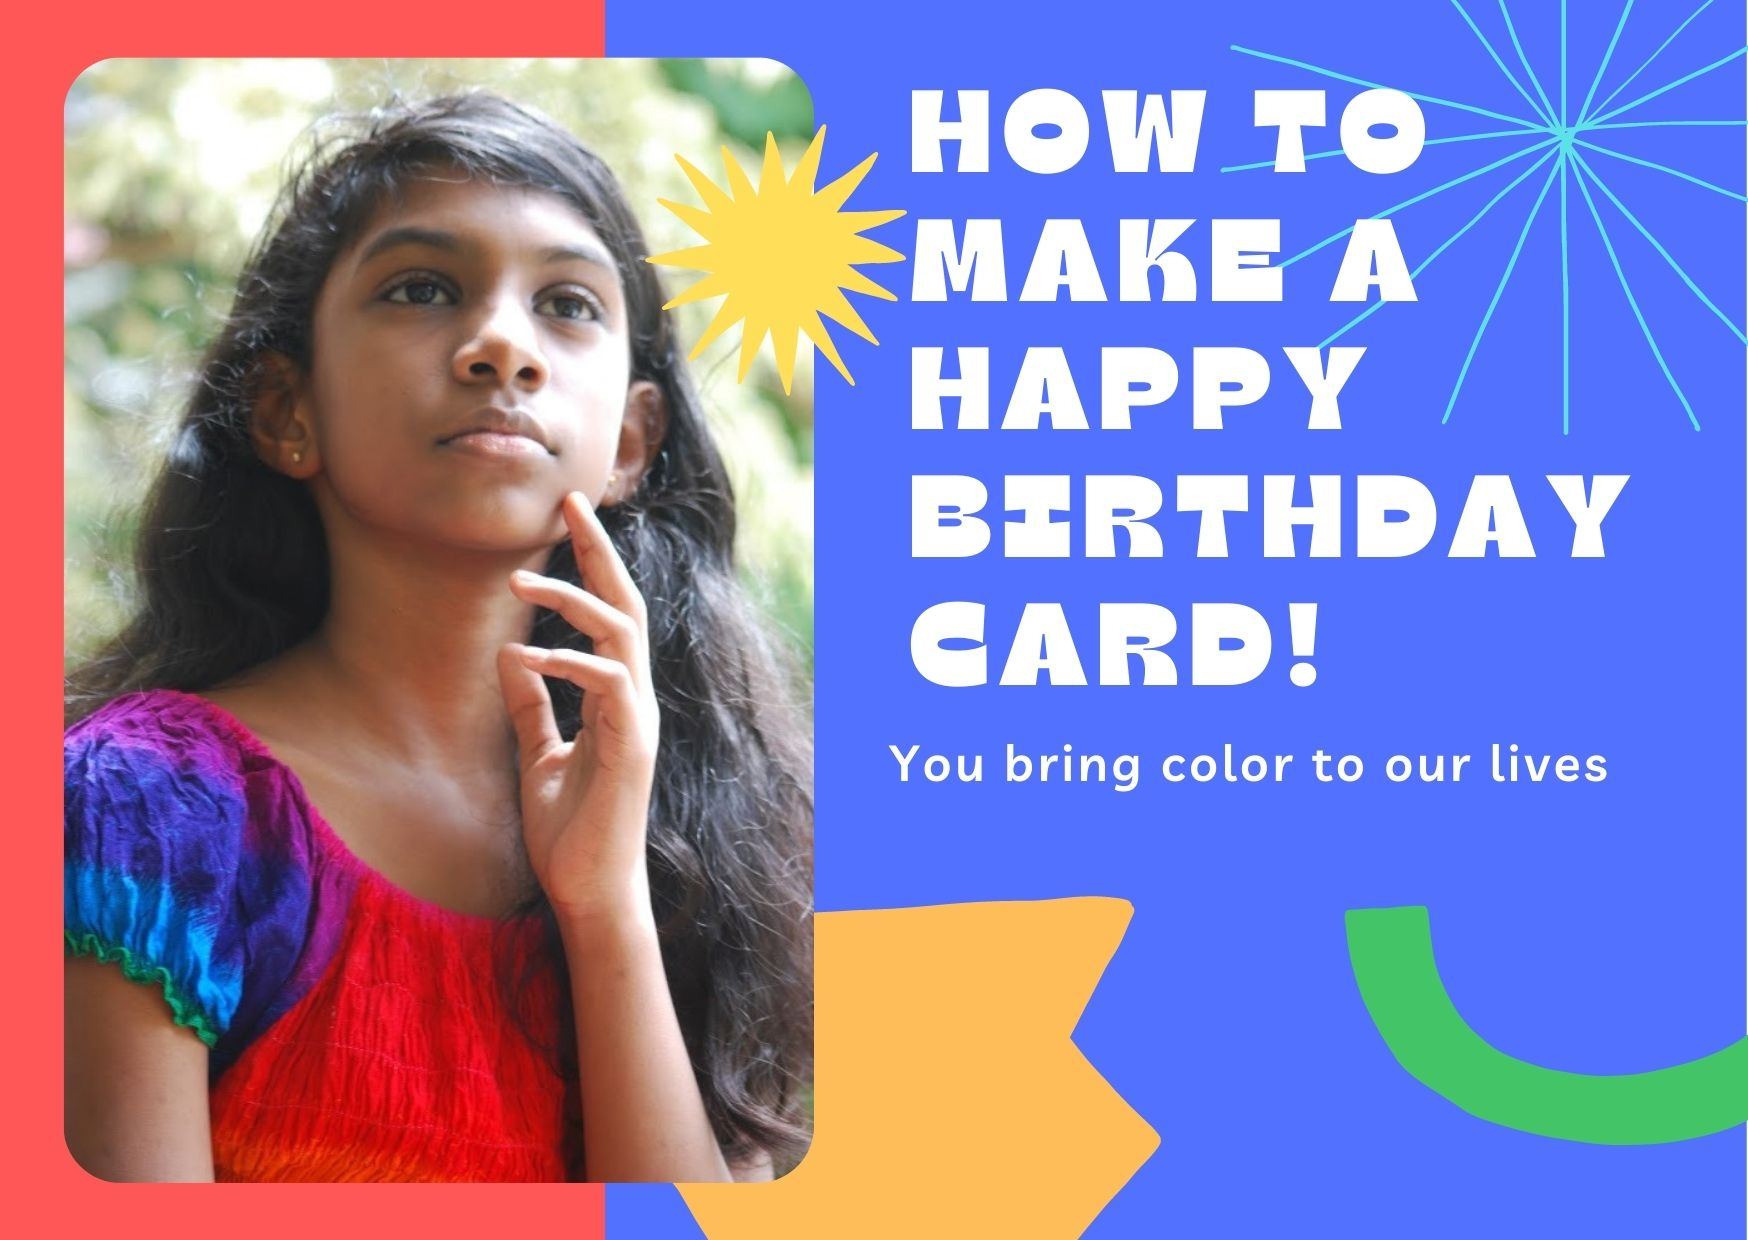 how to make a personalized Happy birthday card